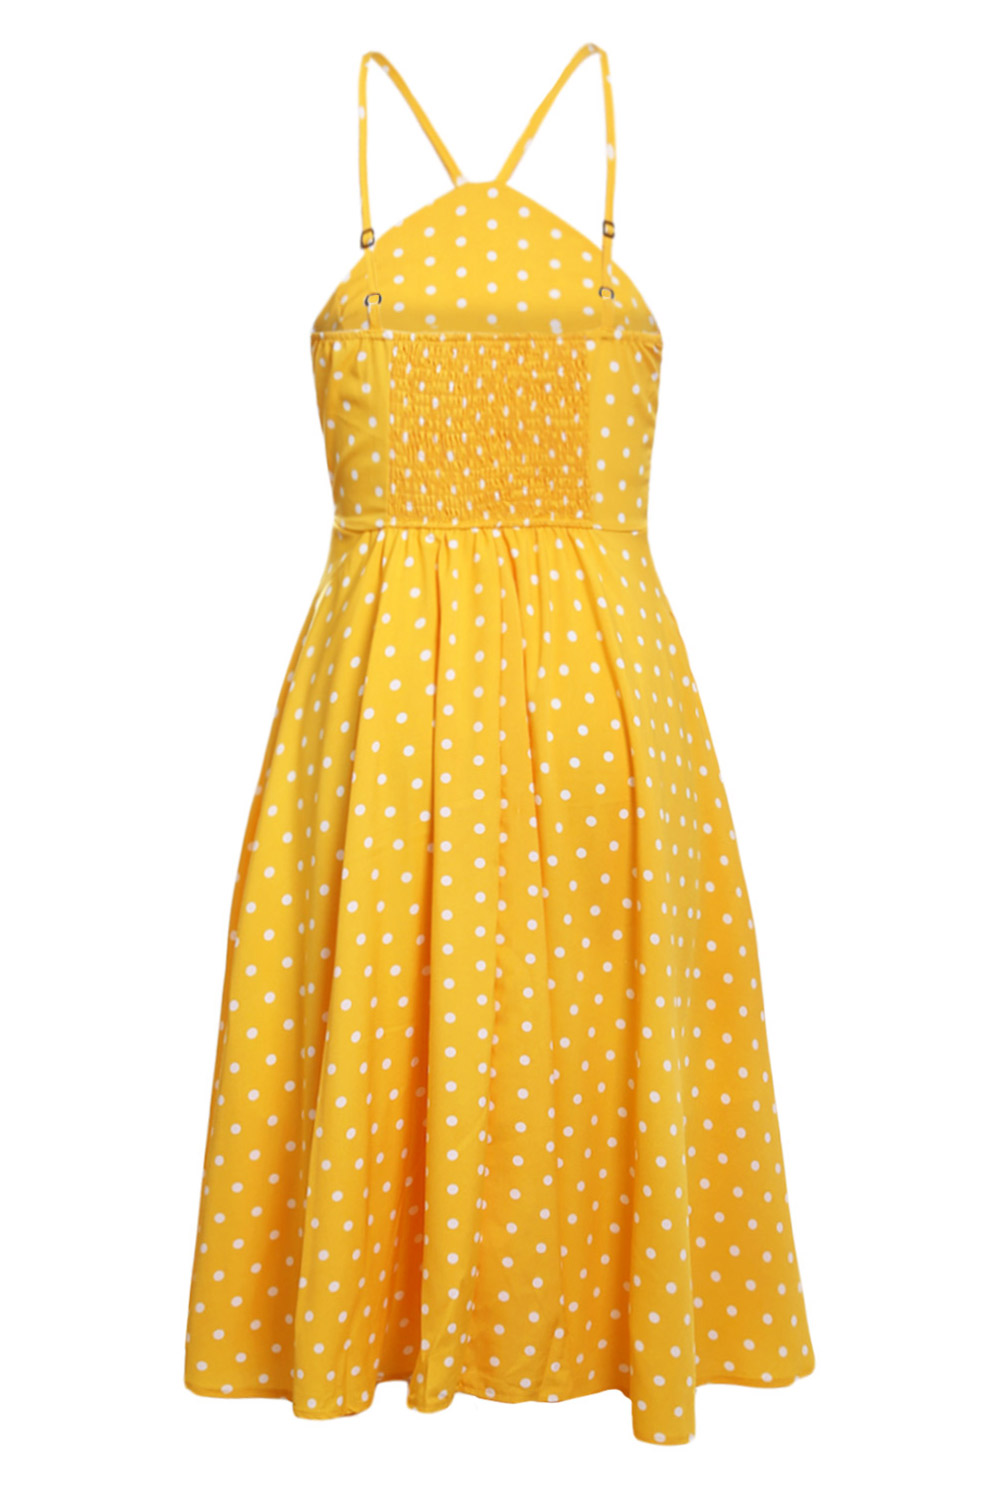 BY610141-7 Yellow White Polka Dot Flared Vintage Dress